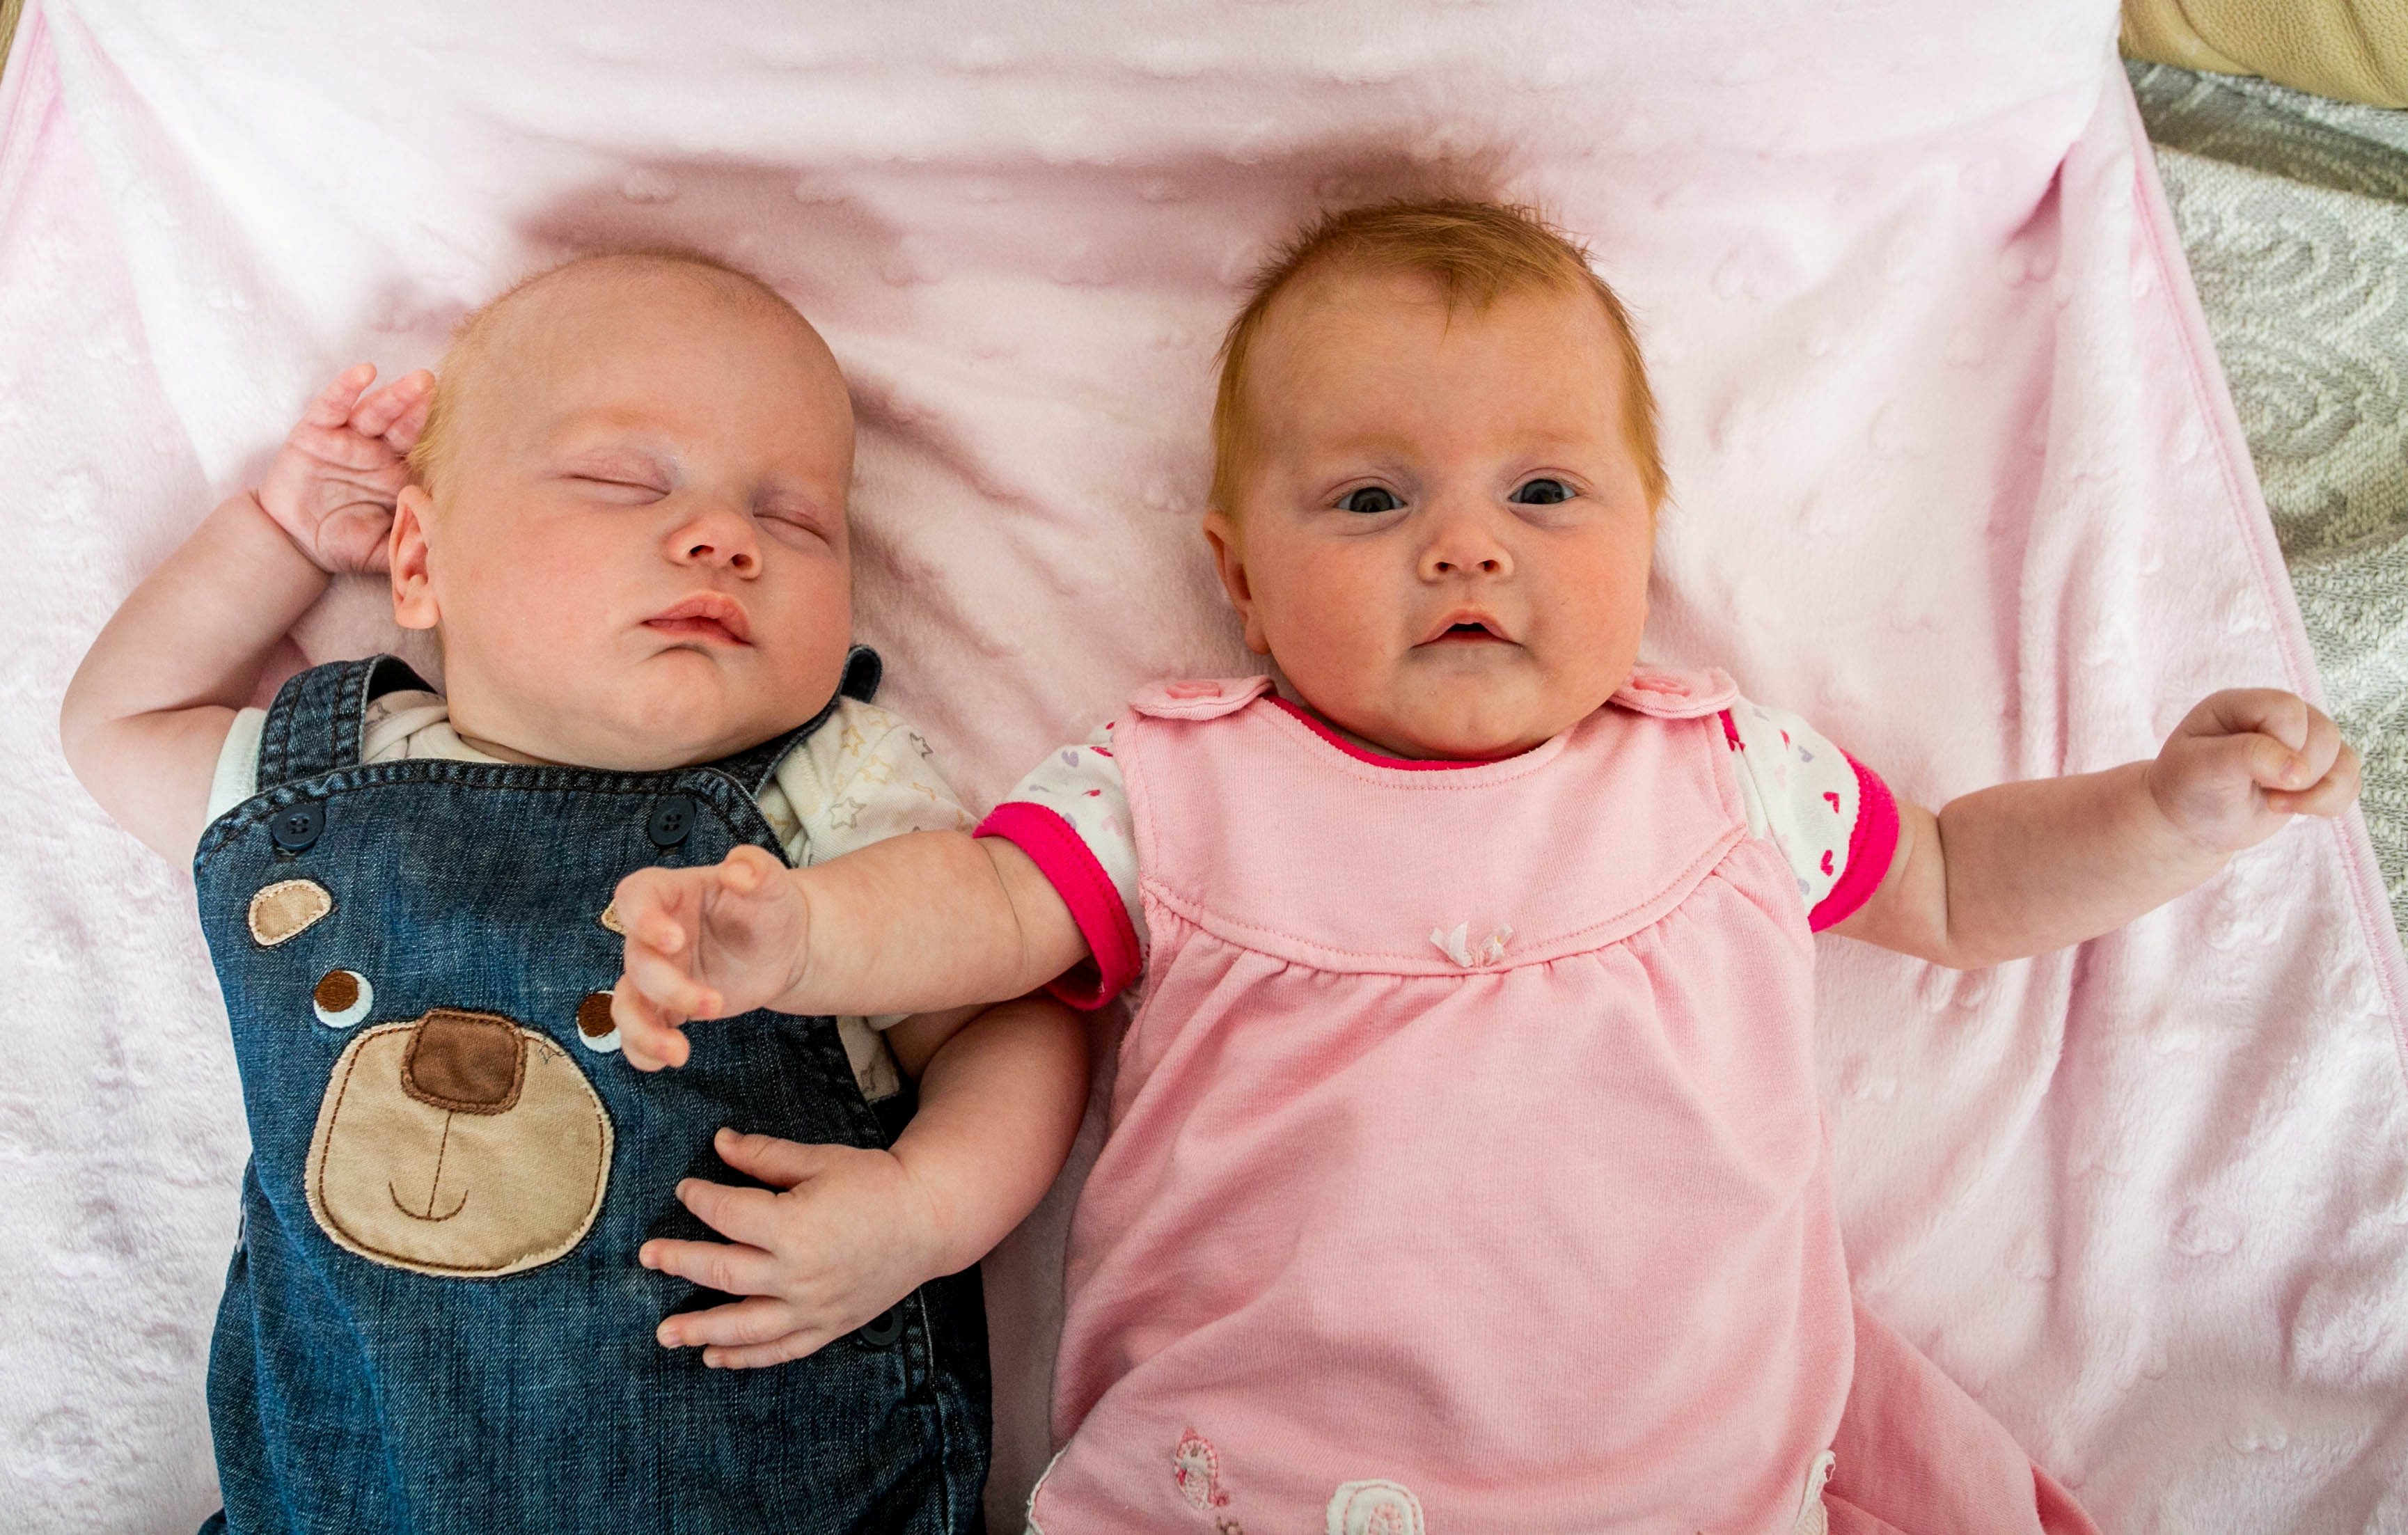 Mum with two uterus' welcomes 1 in 500 million twins - one ...